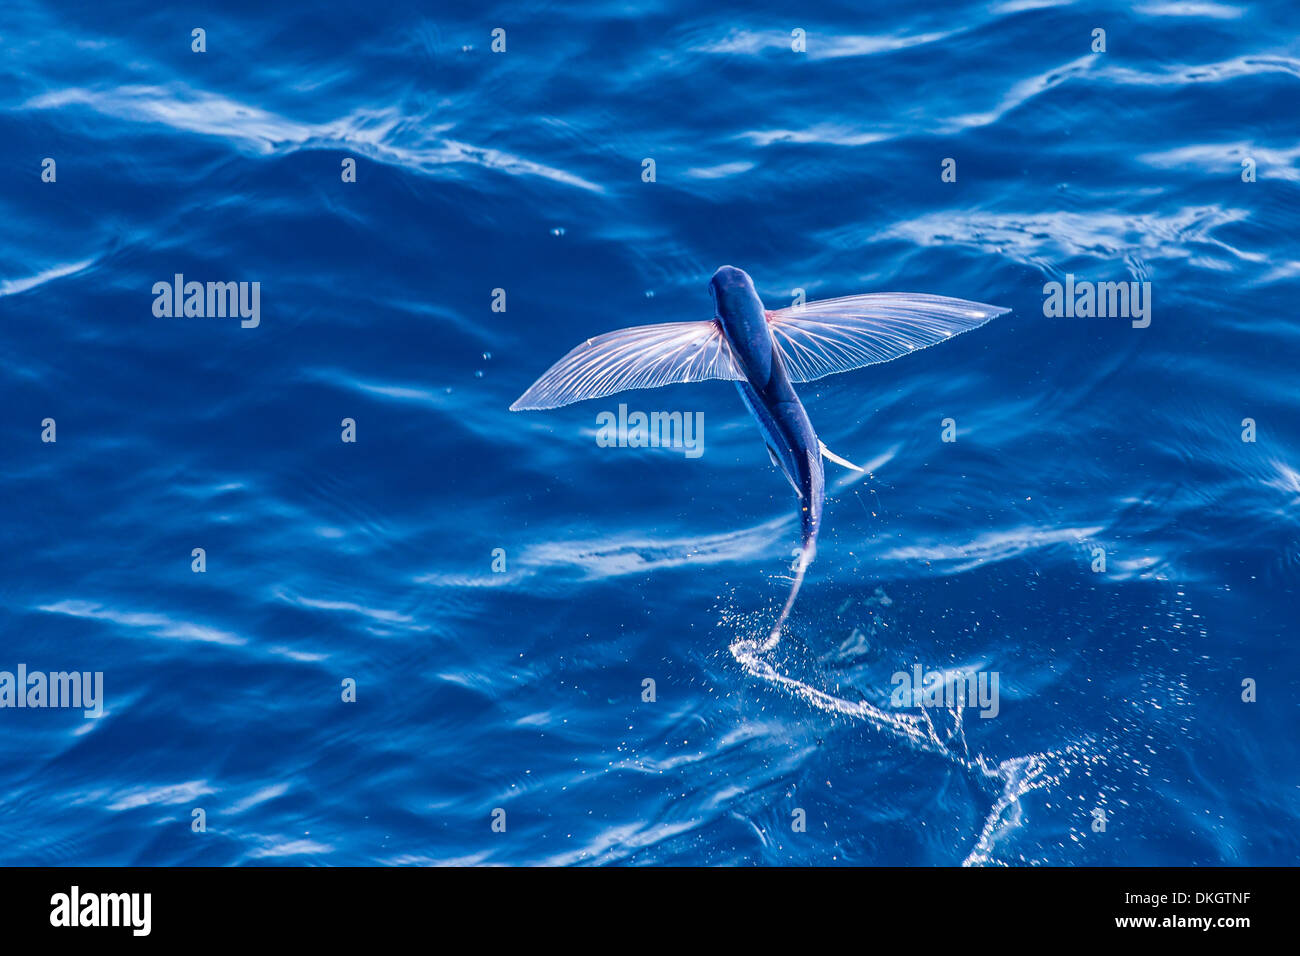 Flying fish from the family exocoetidae taking flight near for Flying fish images